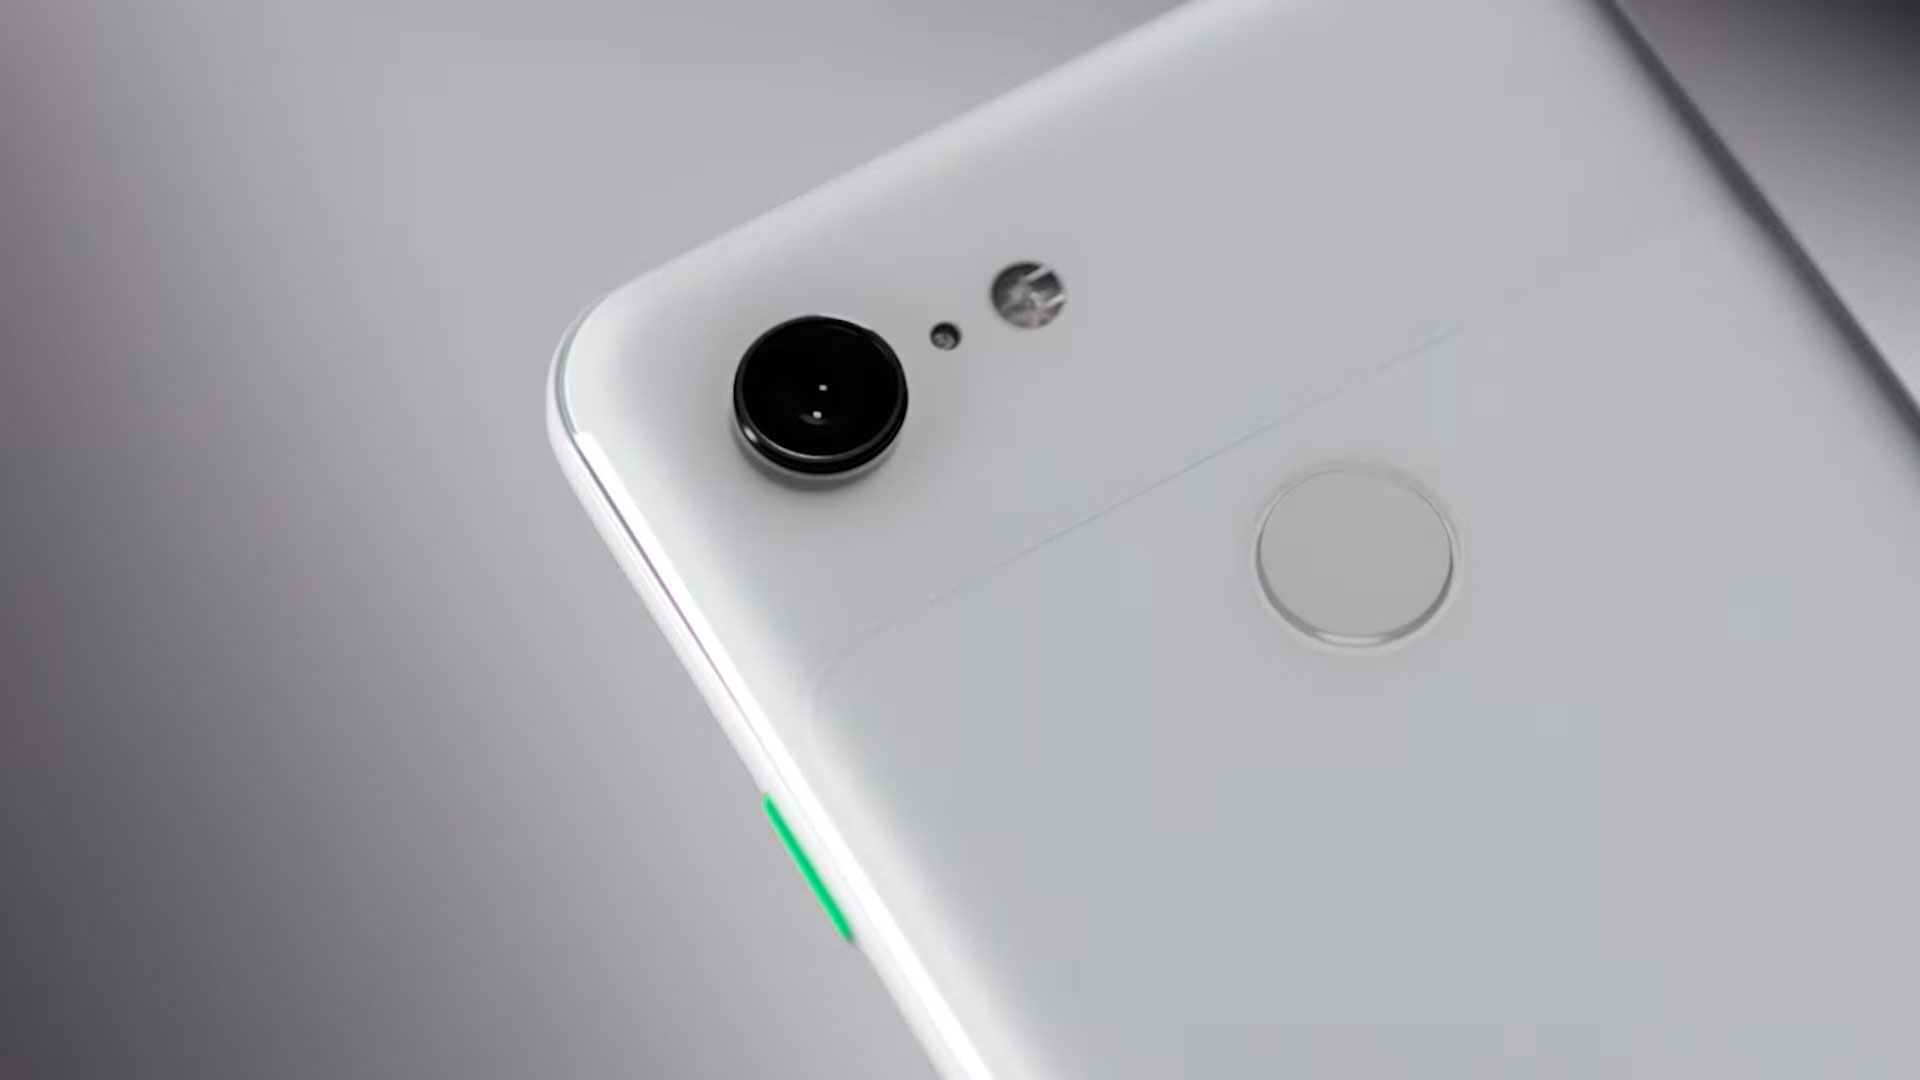 Google Pixel 4 camera samples leaked: what are the big new features here?